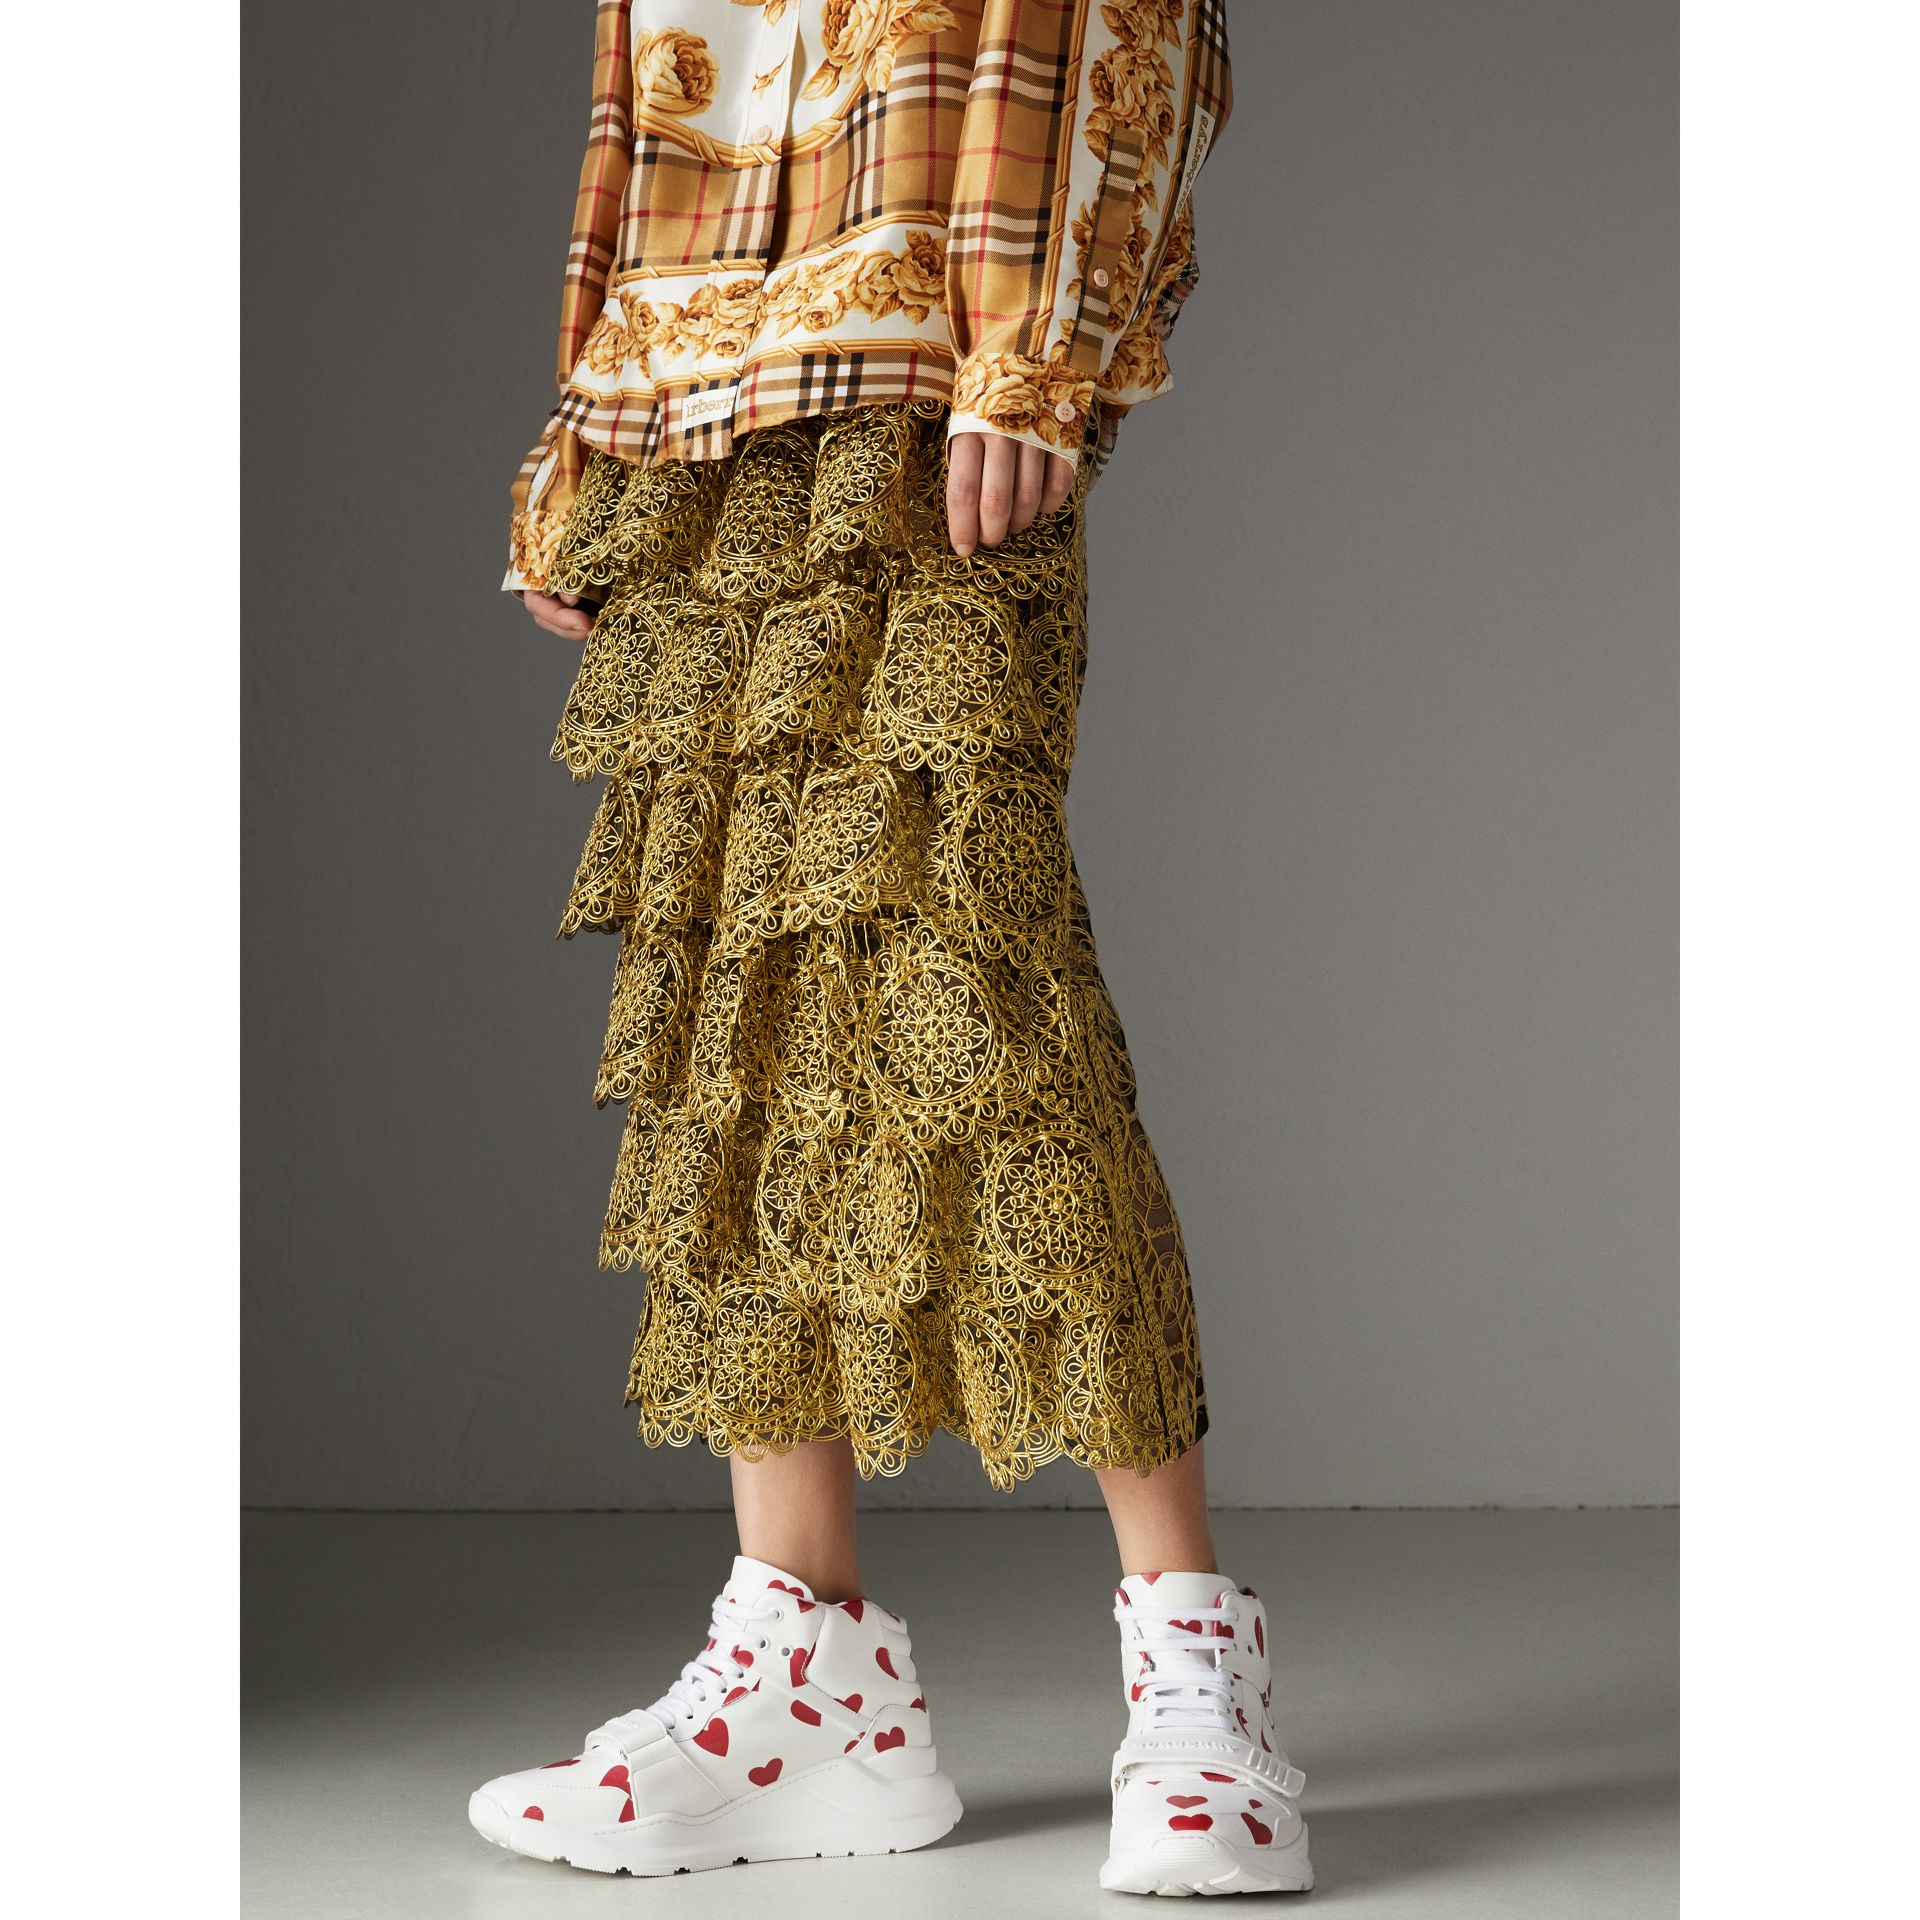 Tiered Silicone Lace Skirt in Gold - Women | Burberry Singapore - gallery image 5